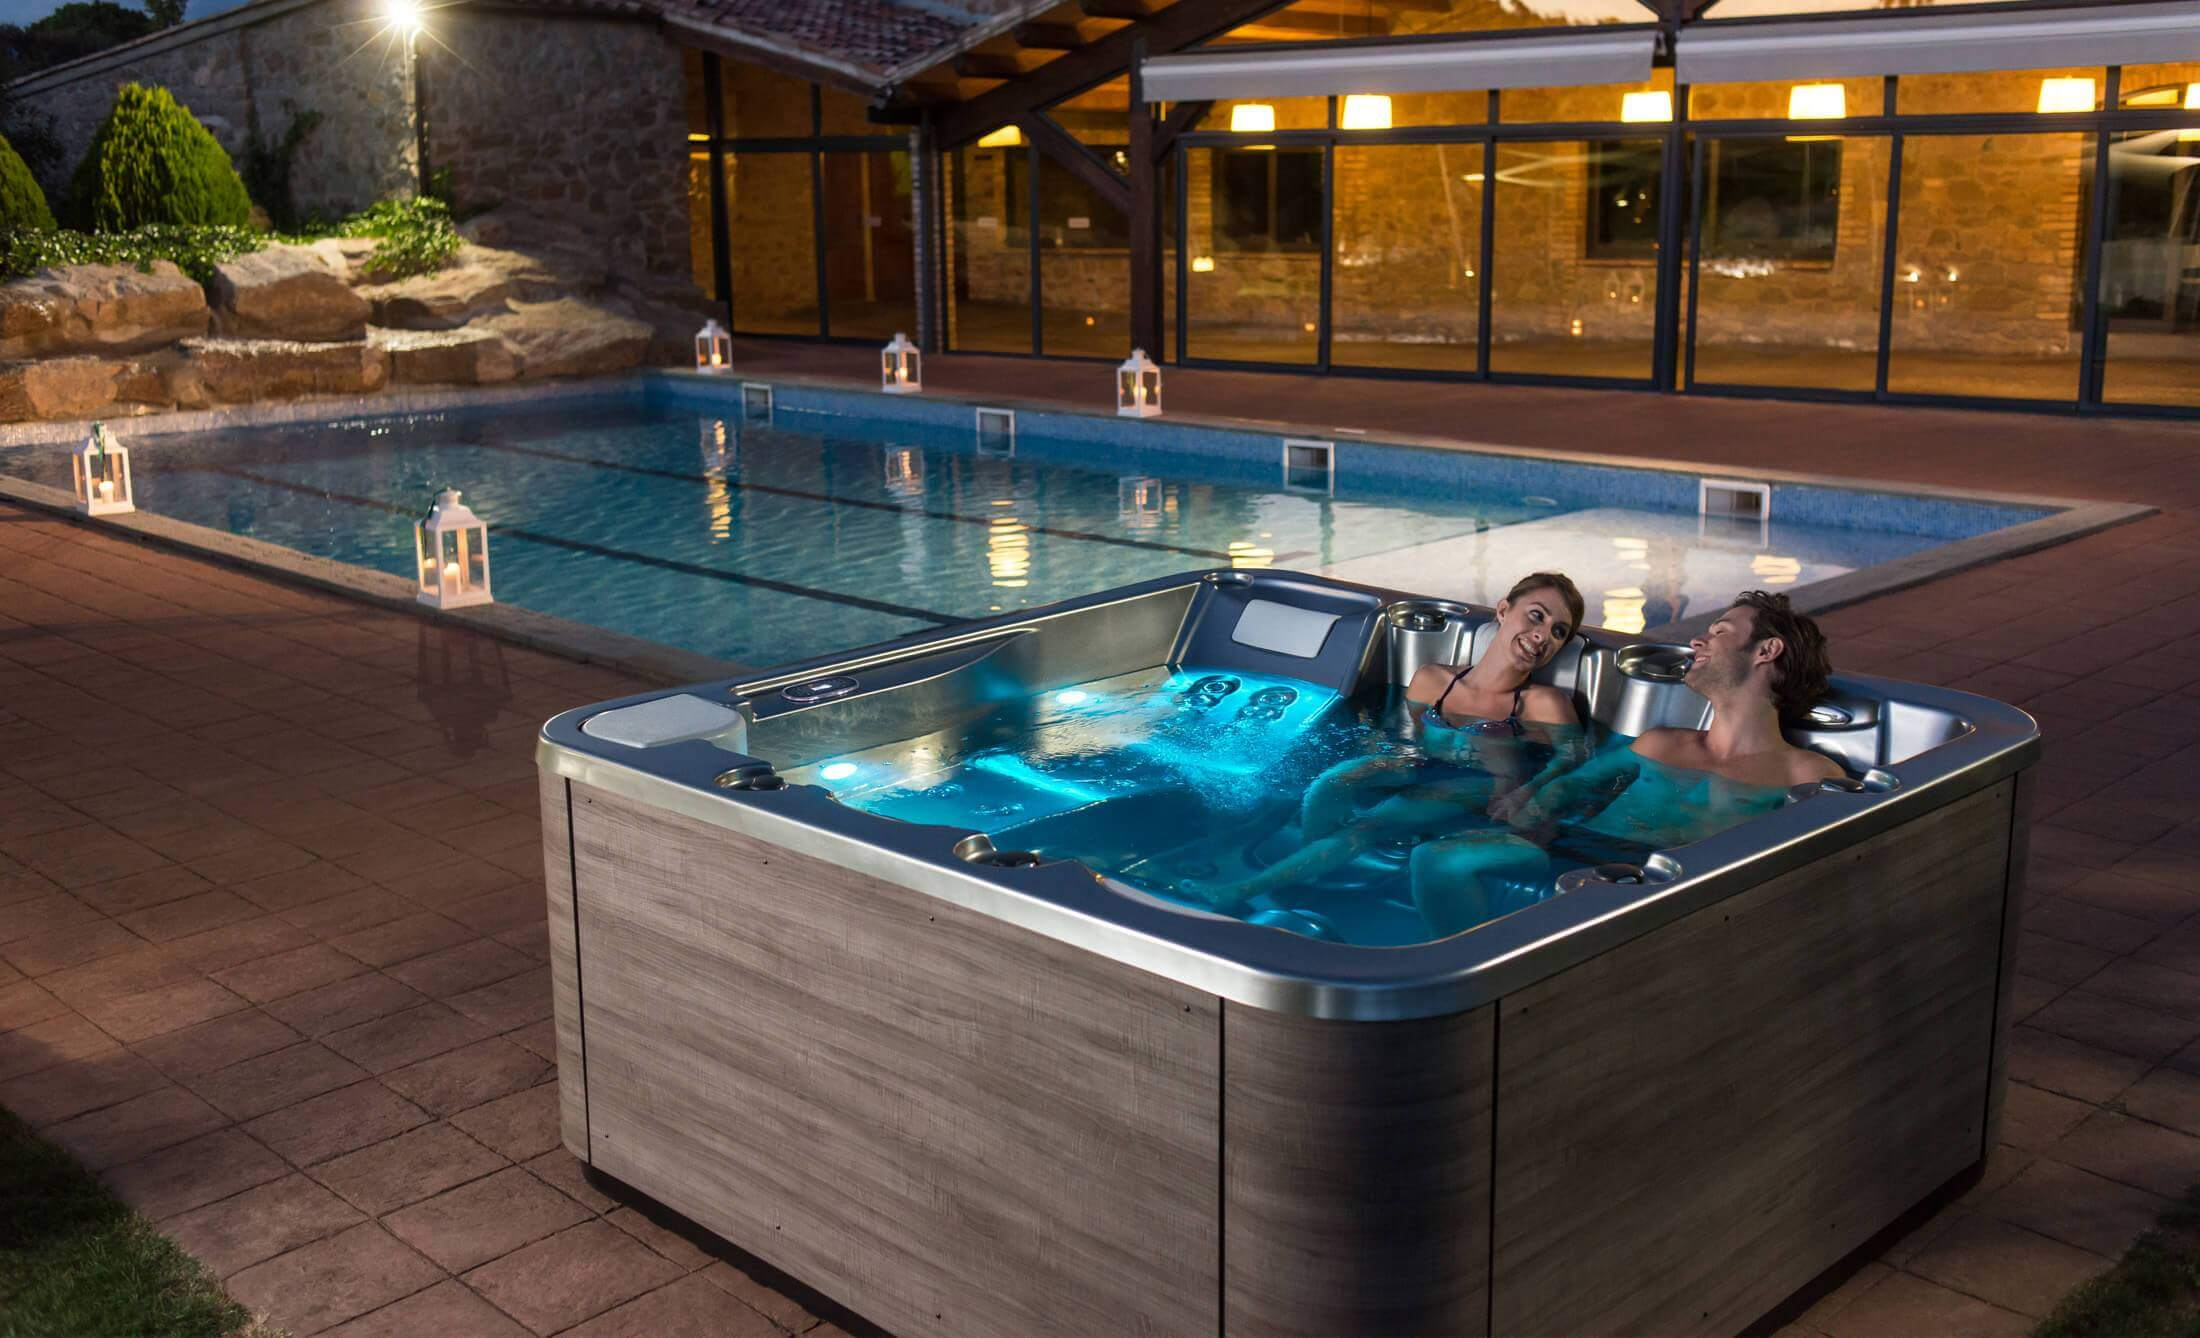 Buy hot tubs and hydromassage tubs - Hot Tub Manufacturer - Aquavia ...